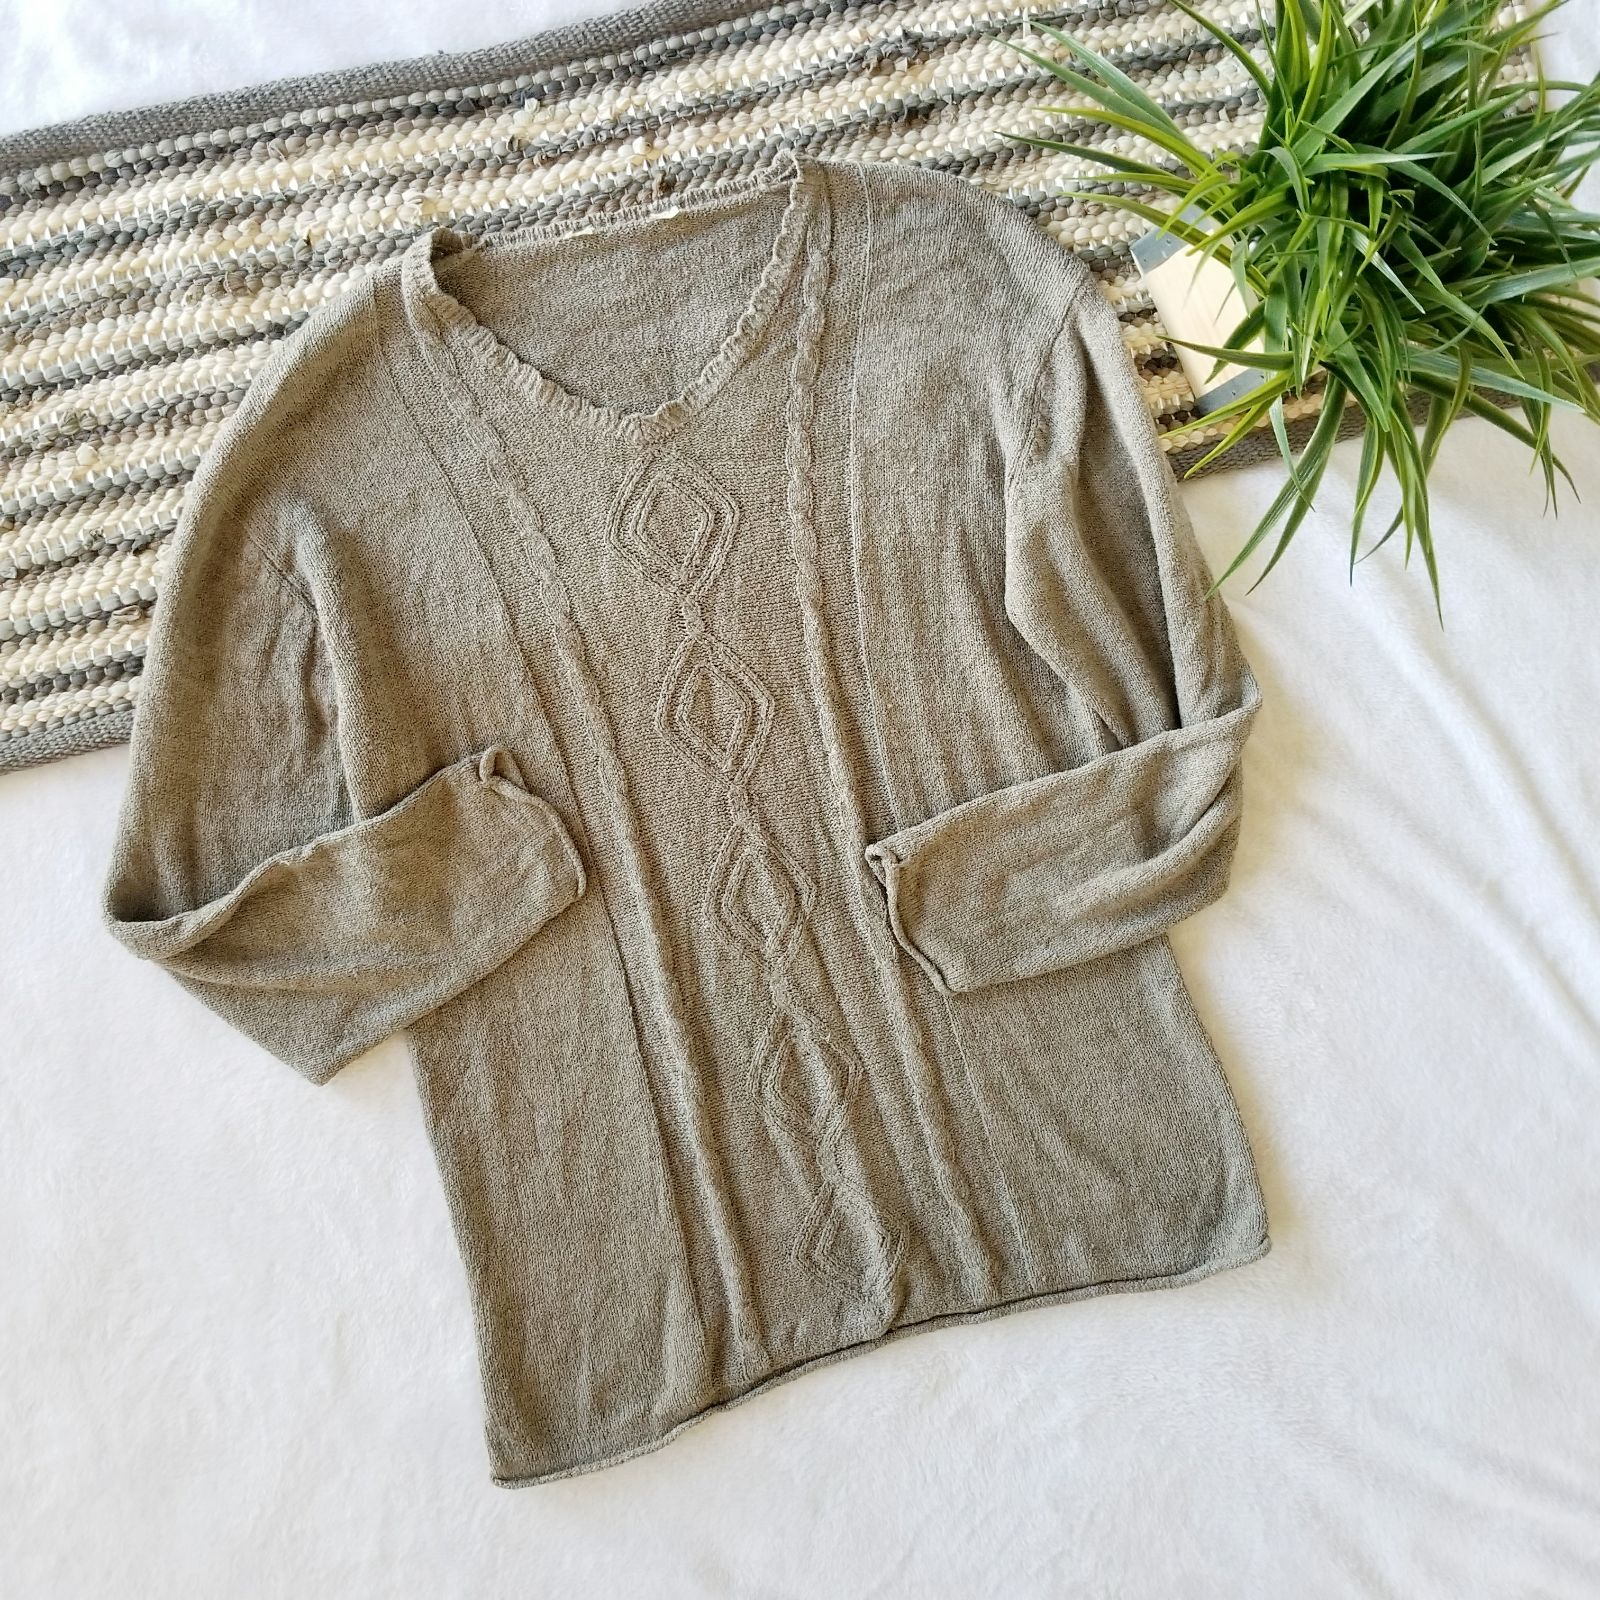 Oversized Cable Knit Sweater - Mercari: BUY & SELL THINGS YOU LOVE